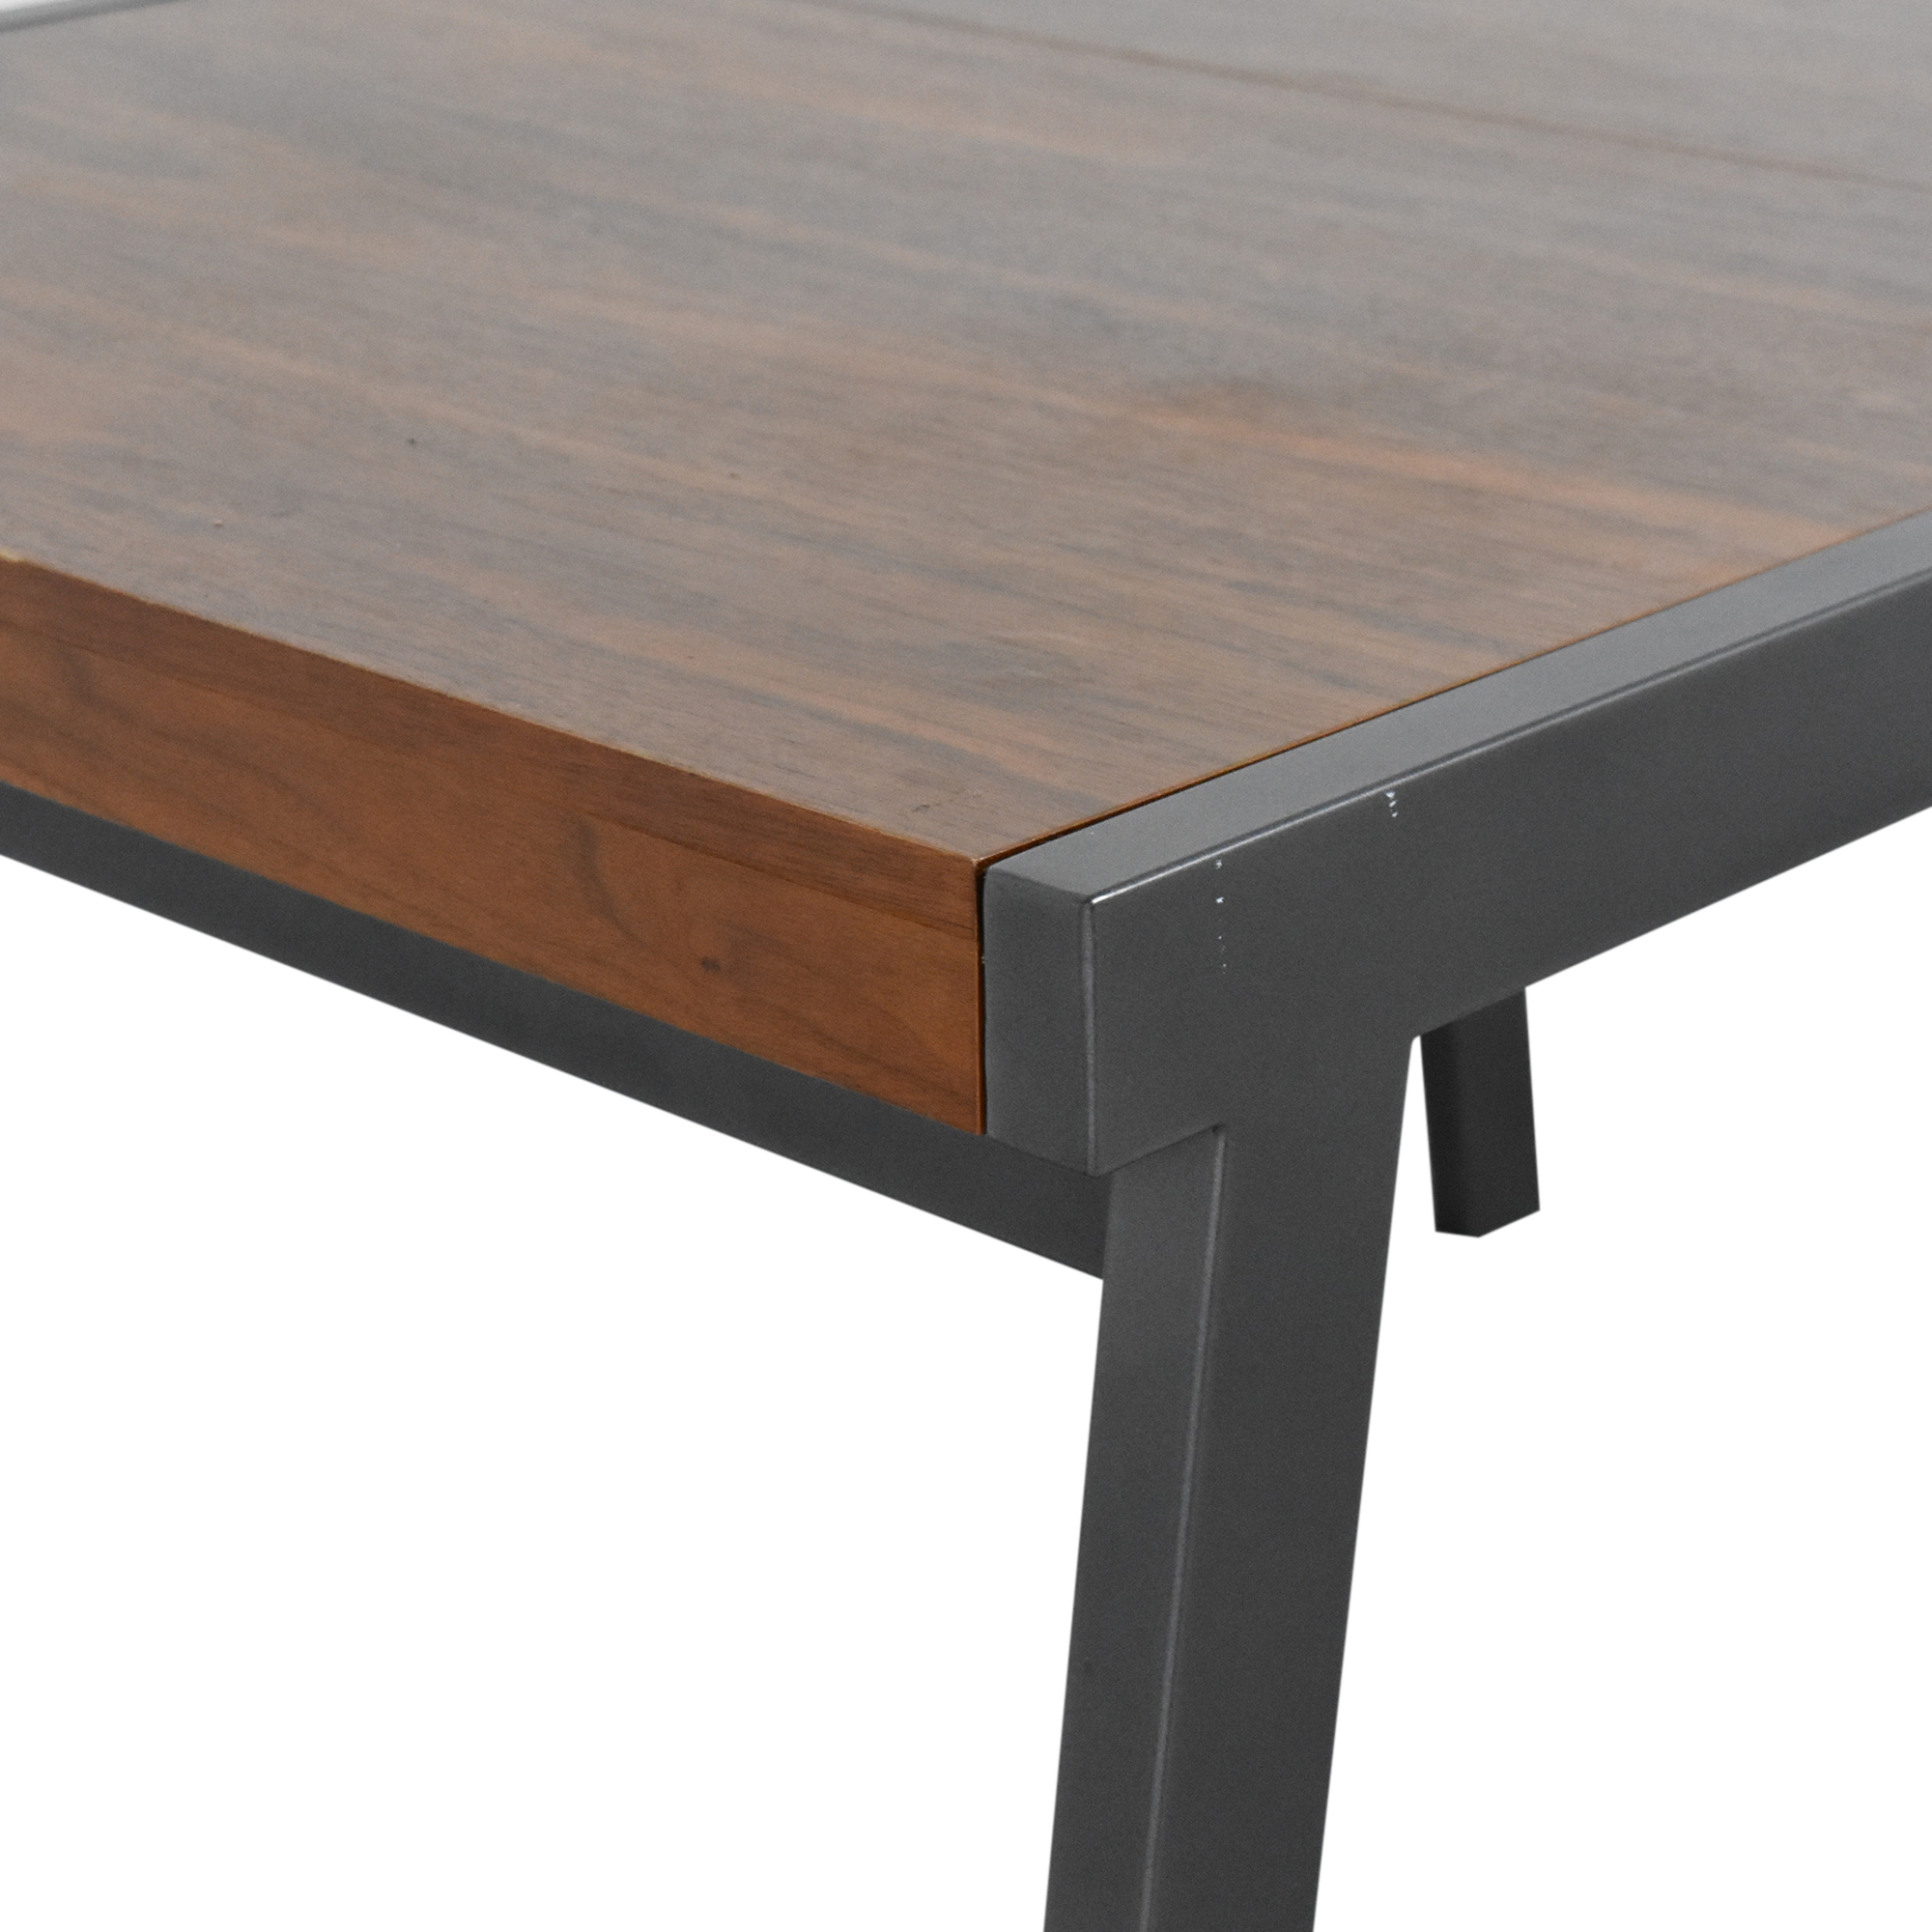 CB2 CB2 Extendable Dining Table for sale